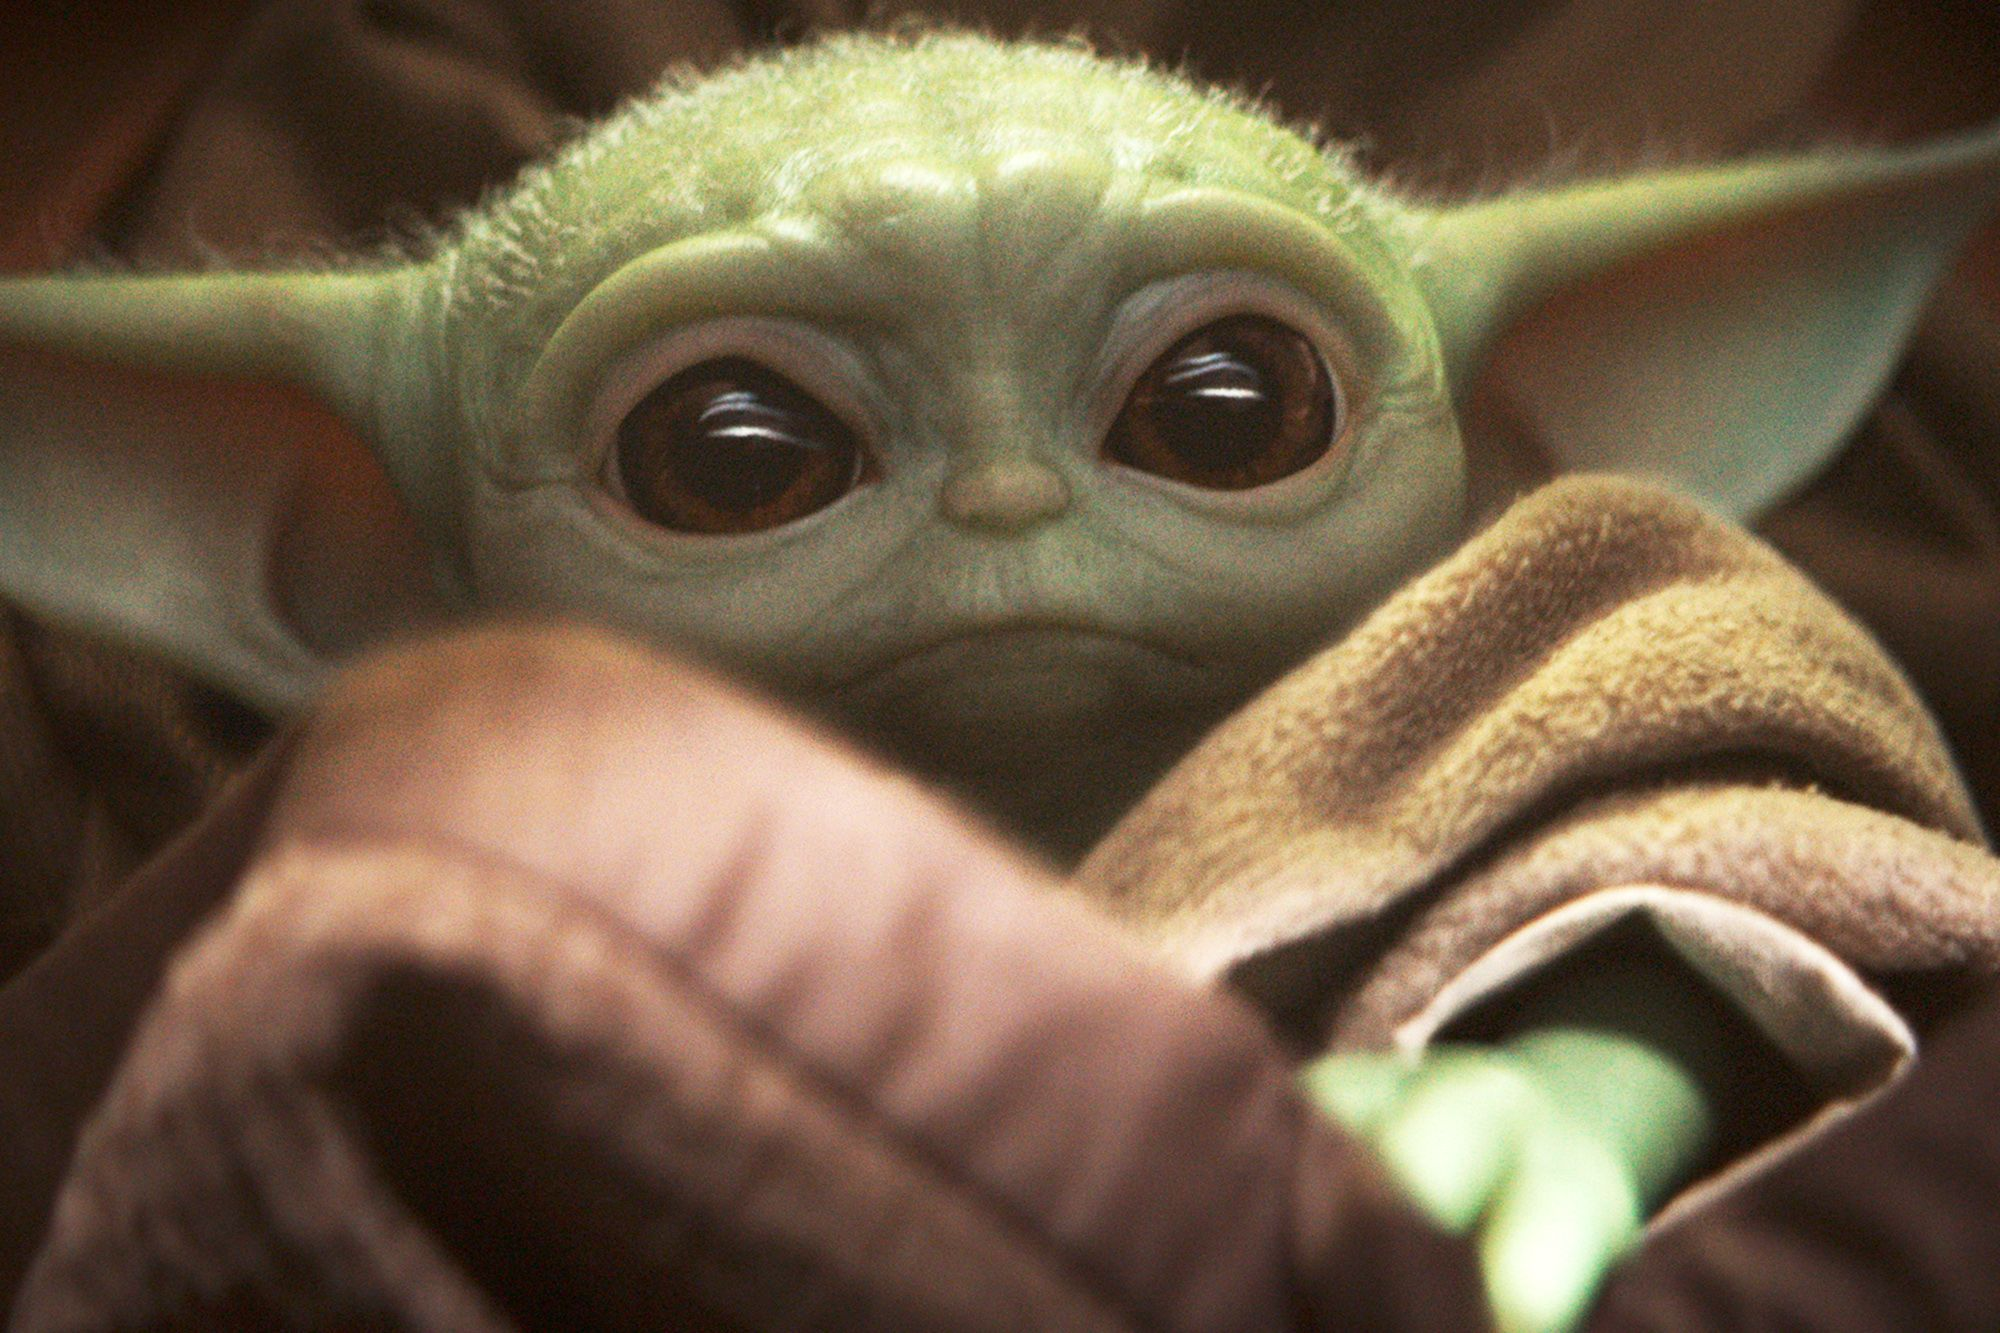 Child Yoda toy is not available in time for Christmas. Here because